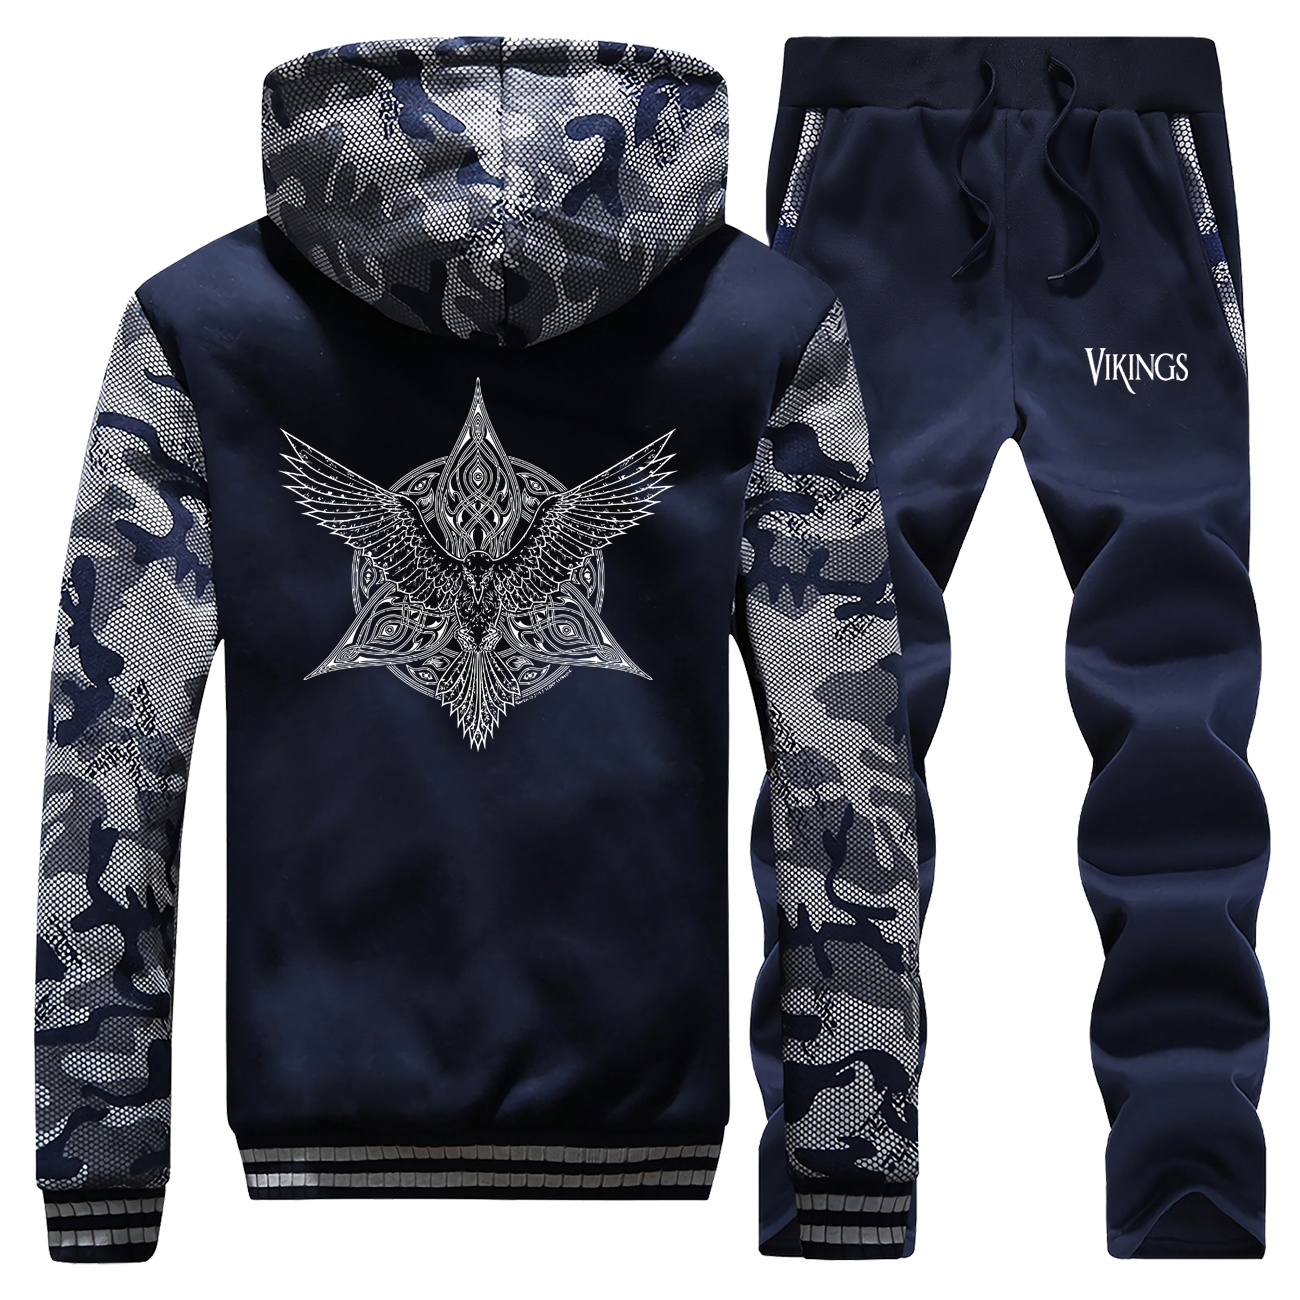 Mens Thick Hoodie+Trousers Viking Legend Winter Brand 2 Piece Sets Camouflage Zipper Jacket Warm Pants Male Sportswear Clothing